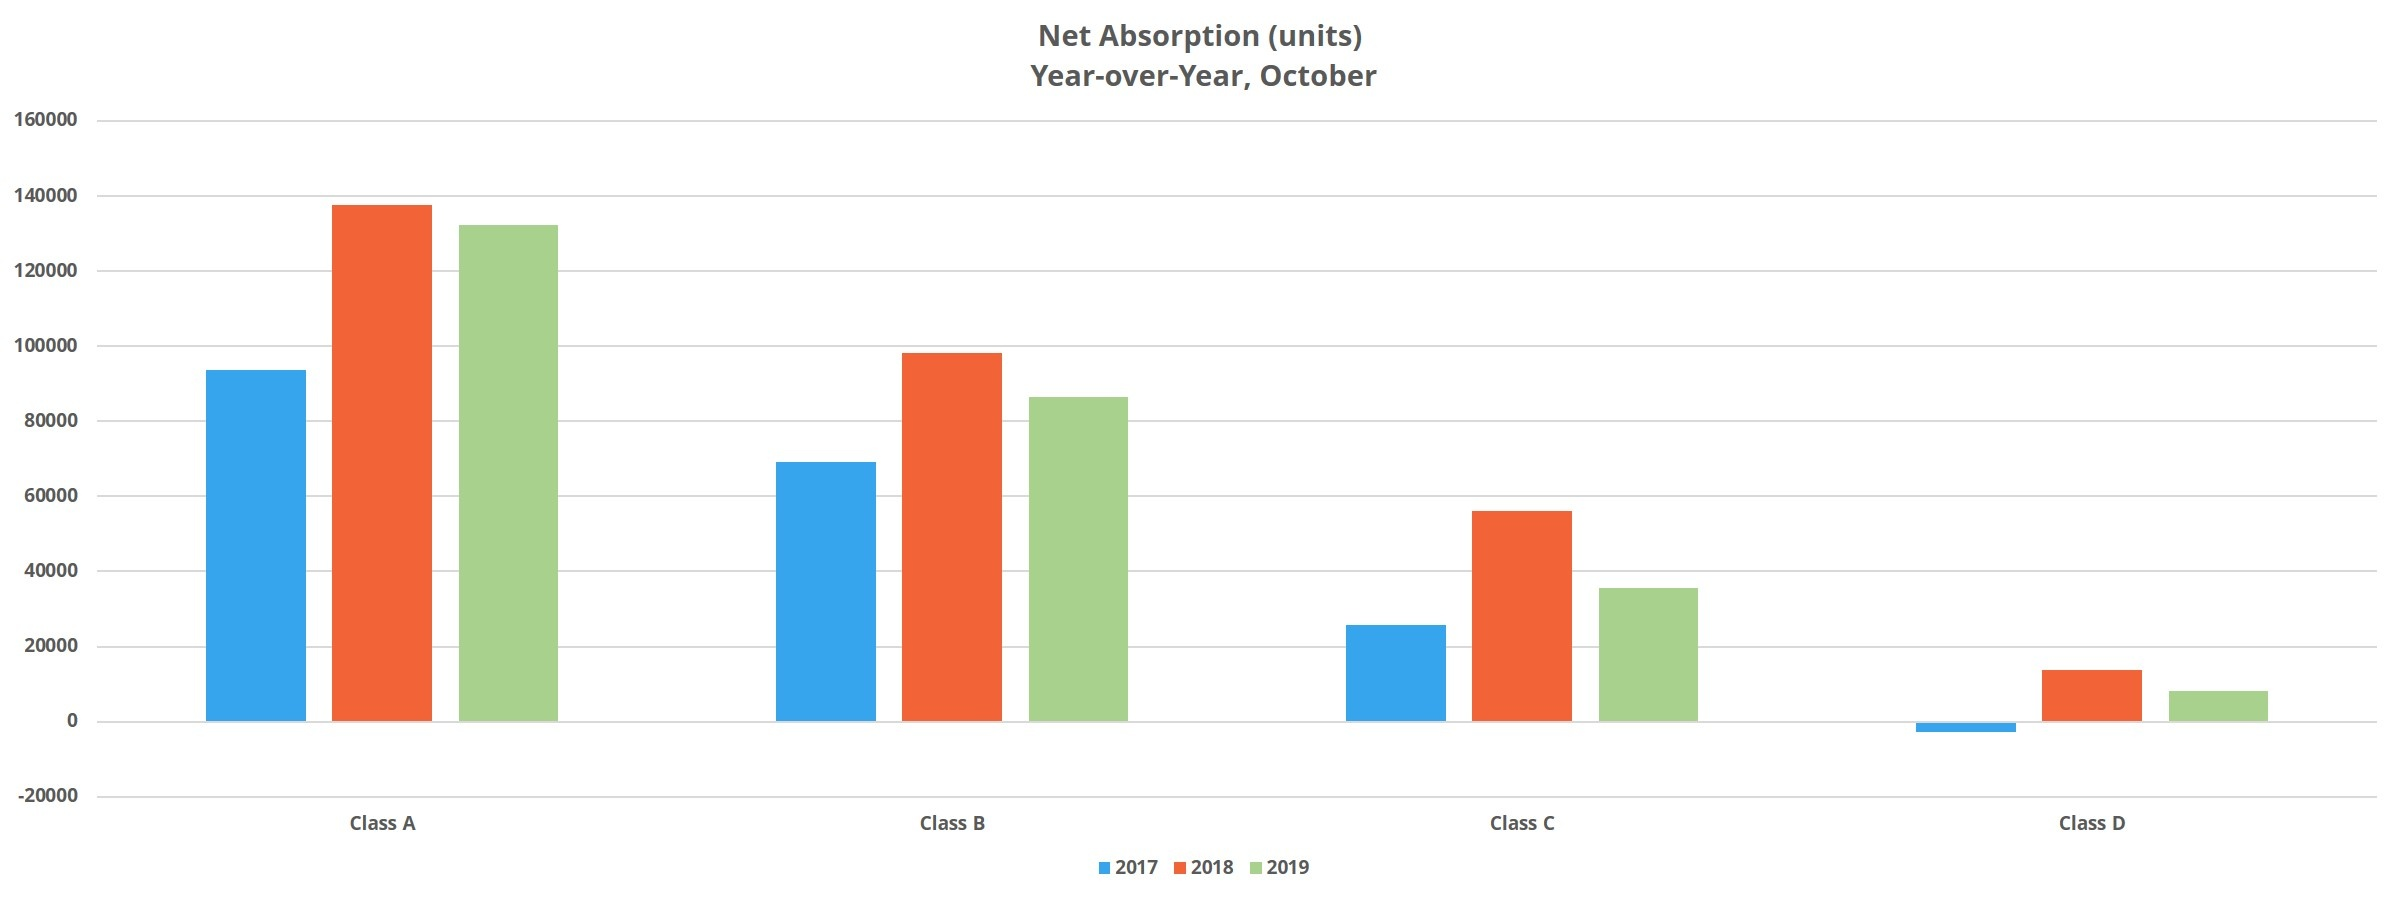 Net Absorption (units) Year-over-Year, October